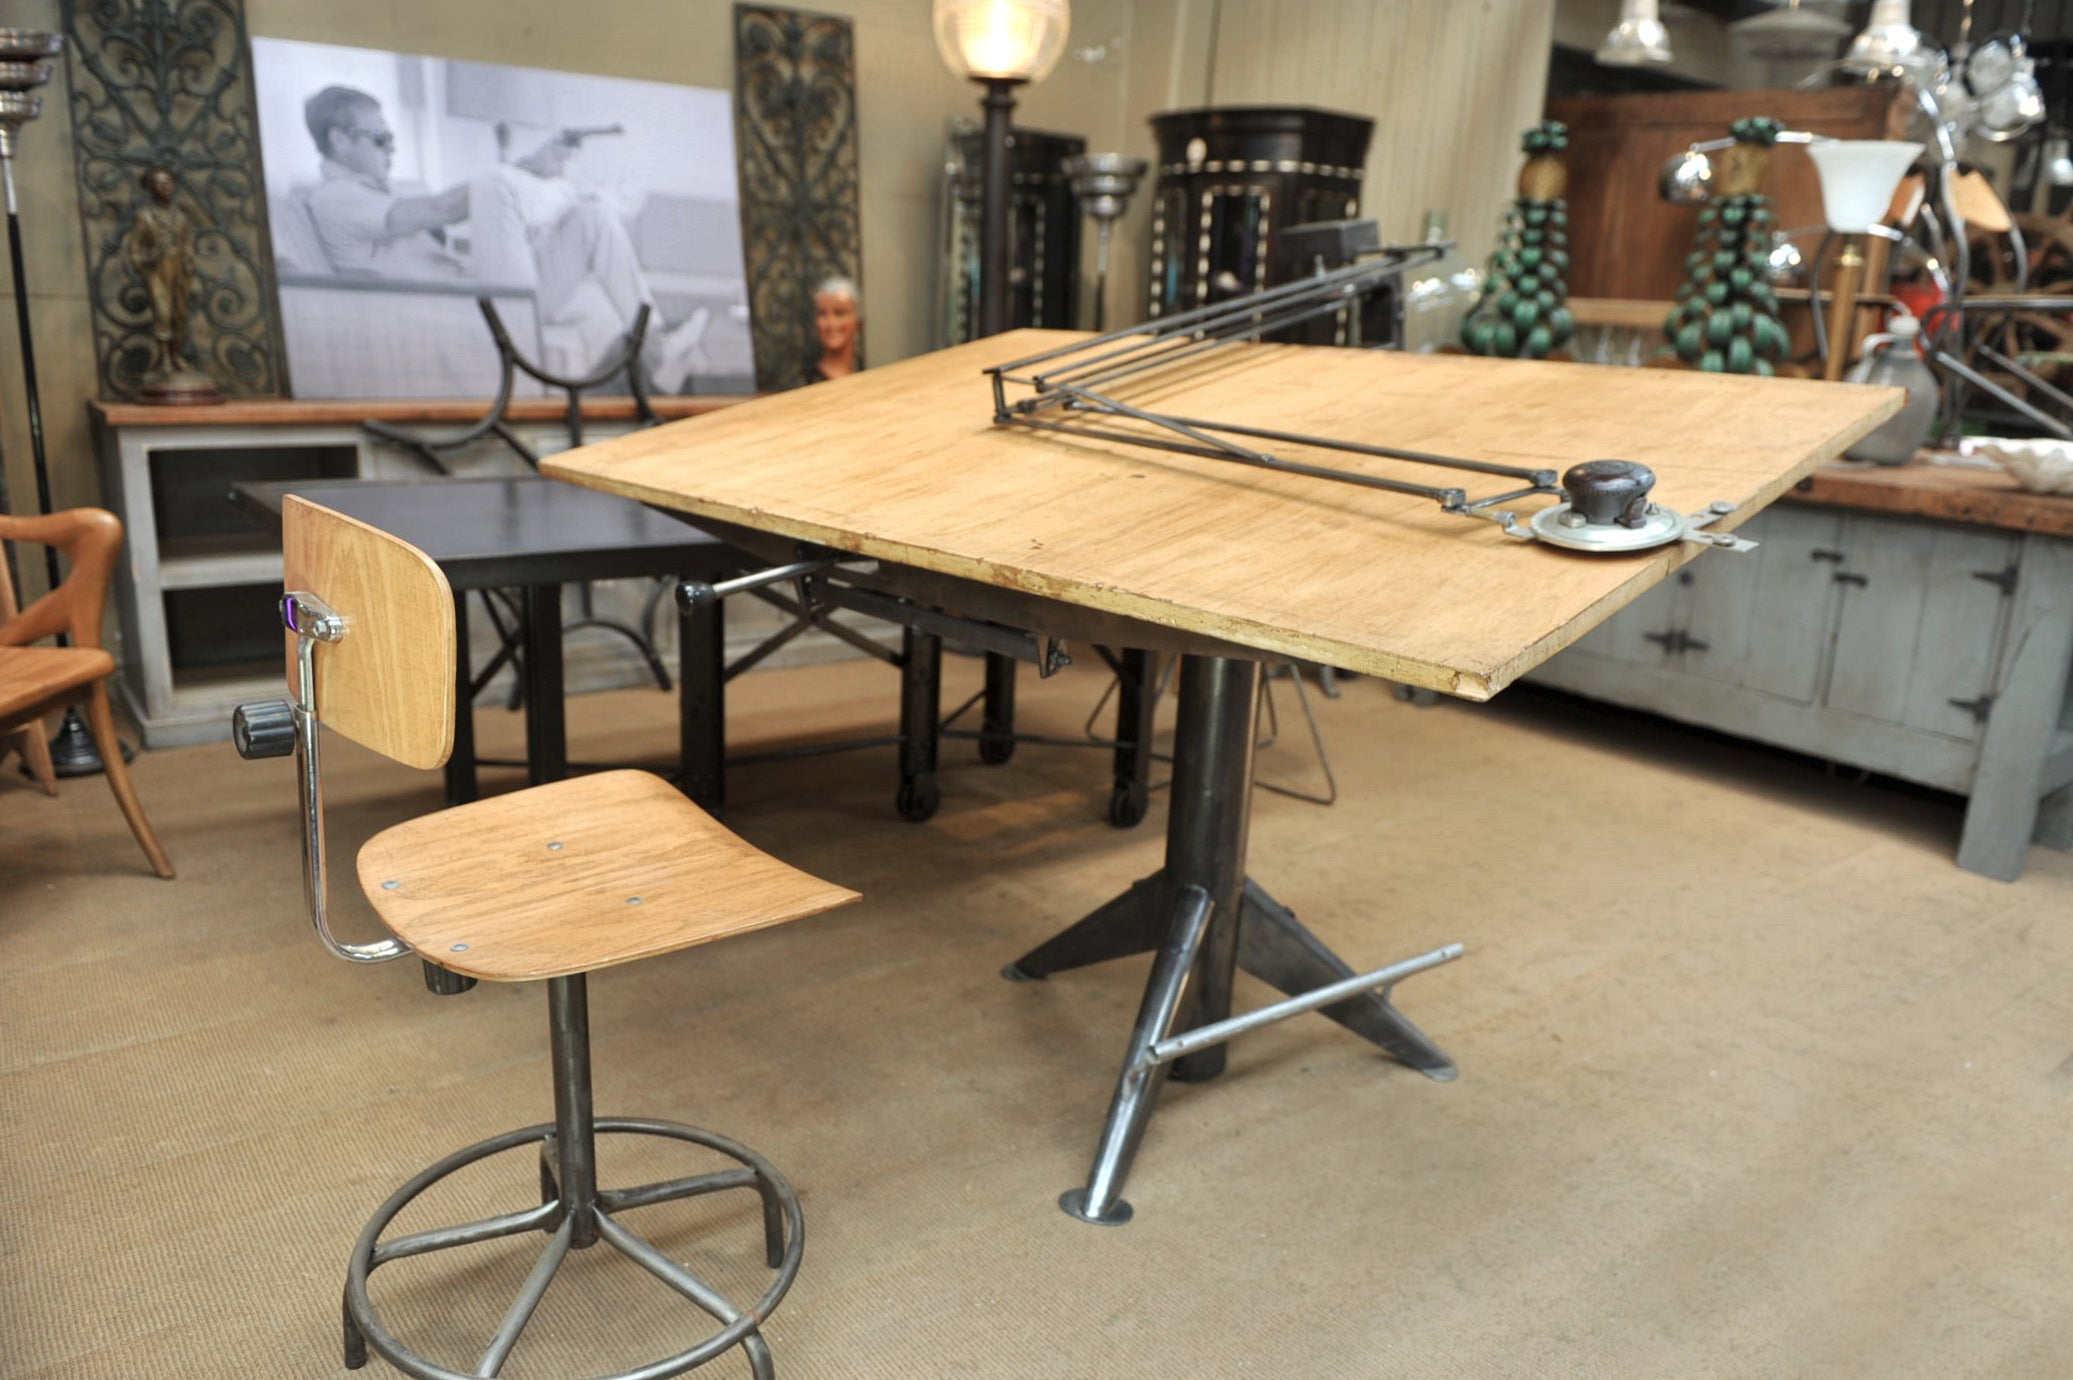 Ets sautereau paris system architects drafting table or writing desk 1950s for sale at 1stdibs